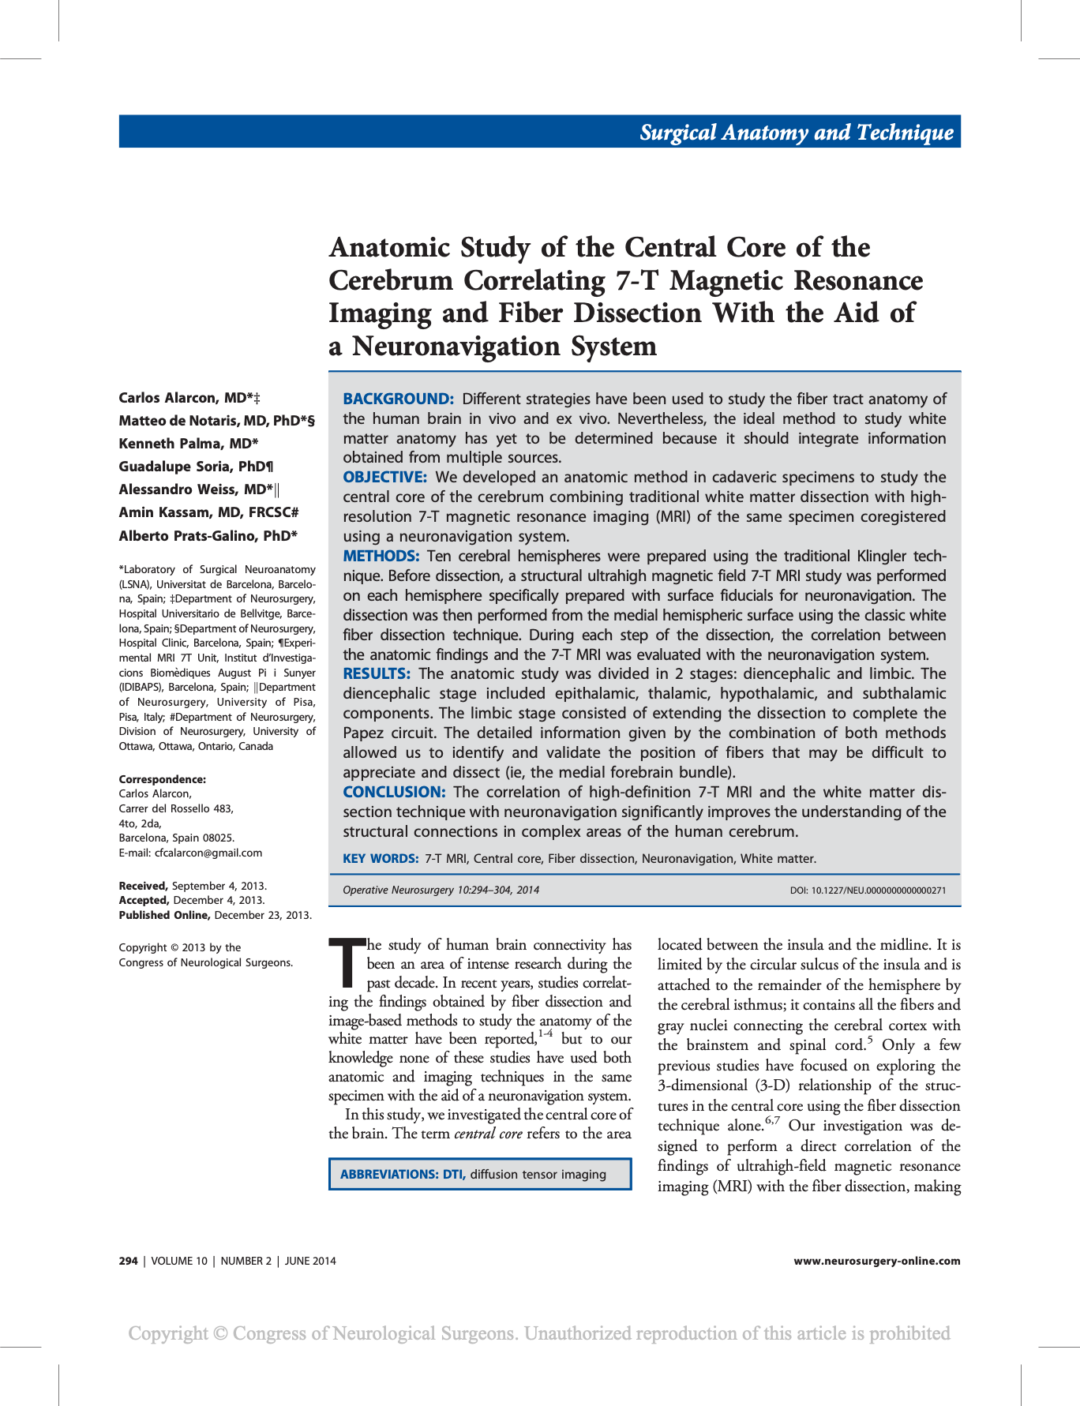 Anatomic Study of the Central Core of the Cerebrum Correlating 7-T Magnetic Resonance Imaging and Fiber Dissection With the Aid of a Neuronavigation System